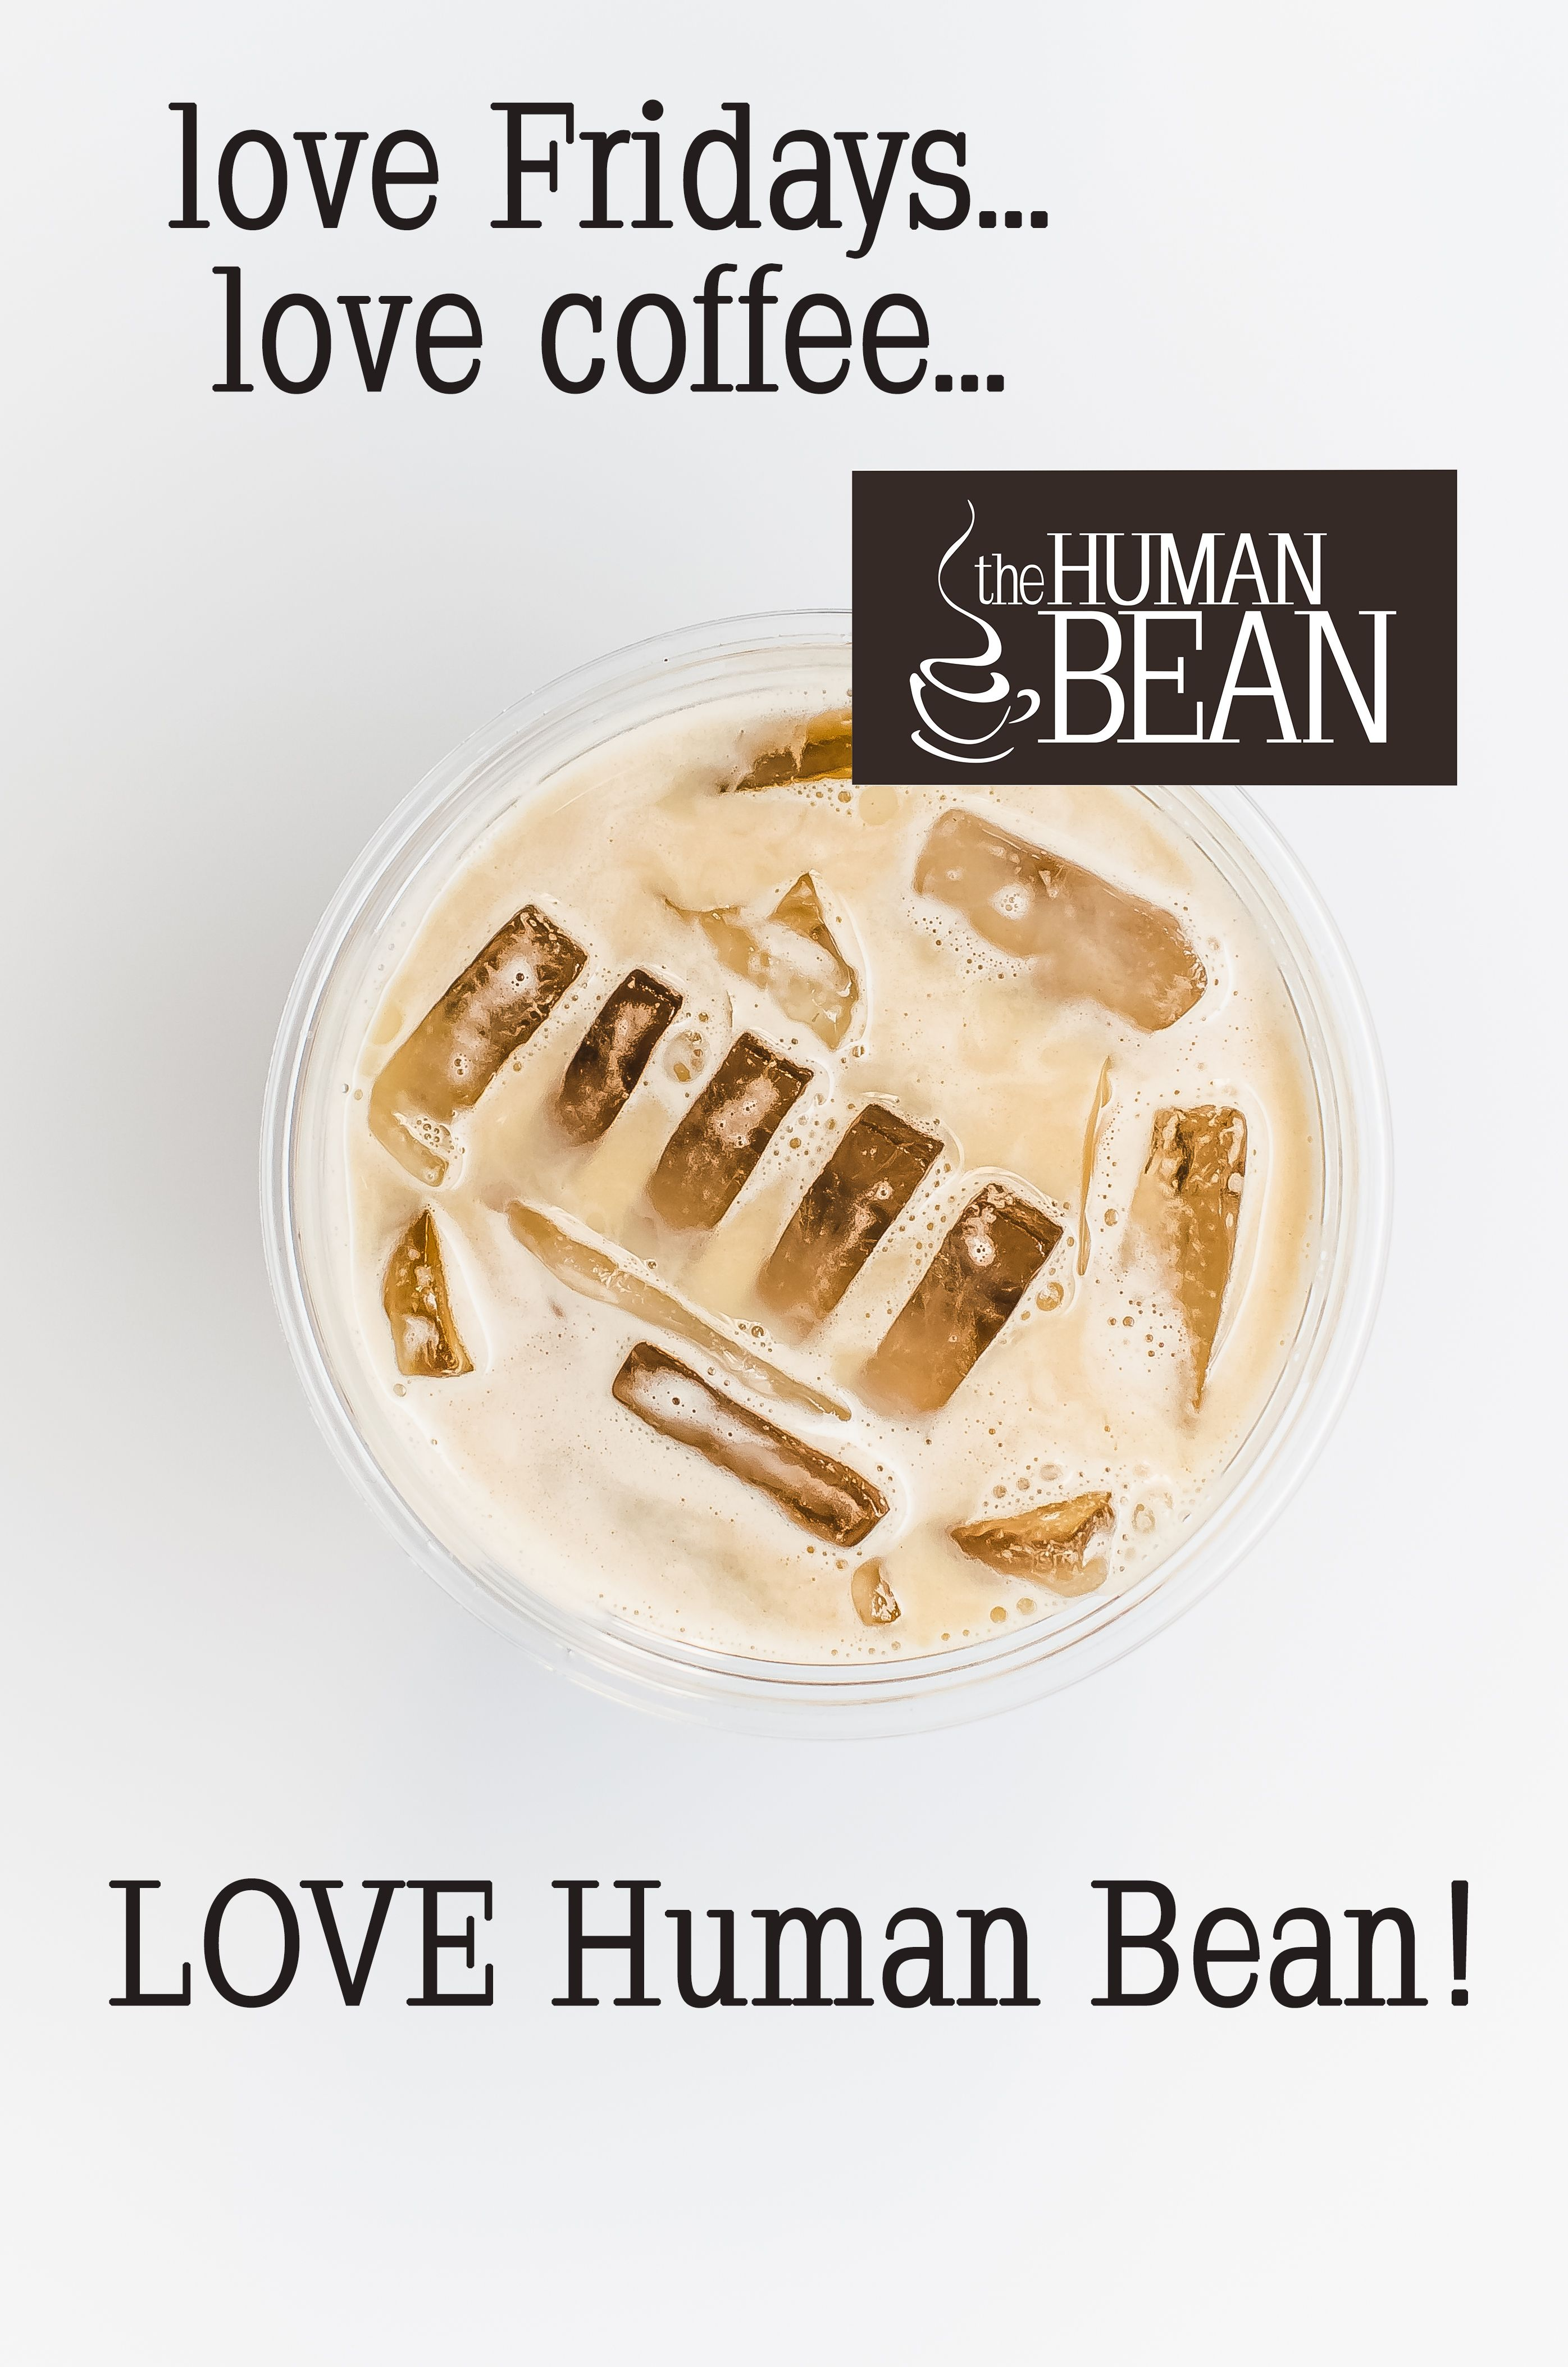 Pin by The Human Bean on Coffee Images Coffee images